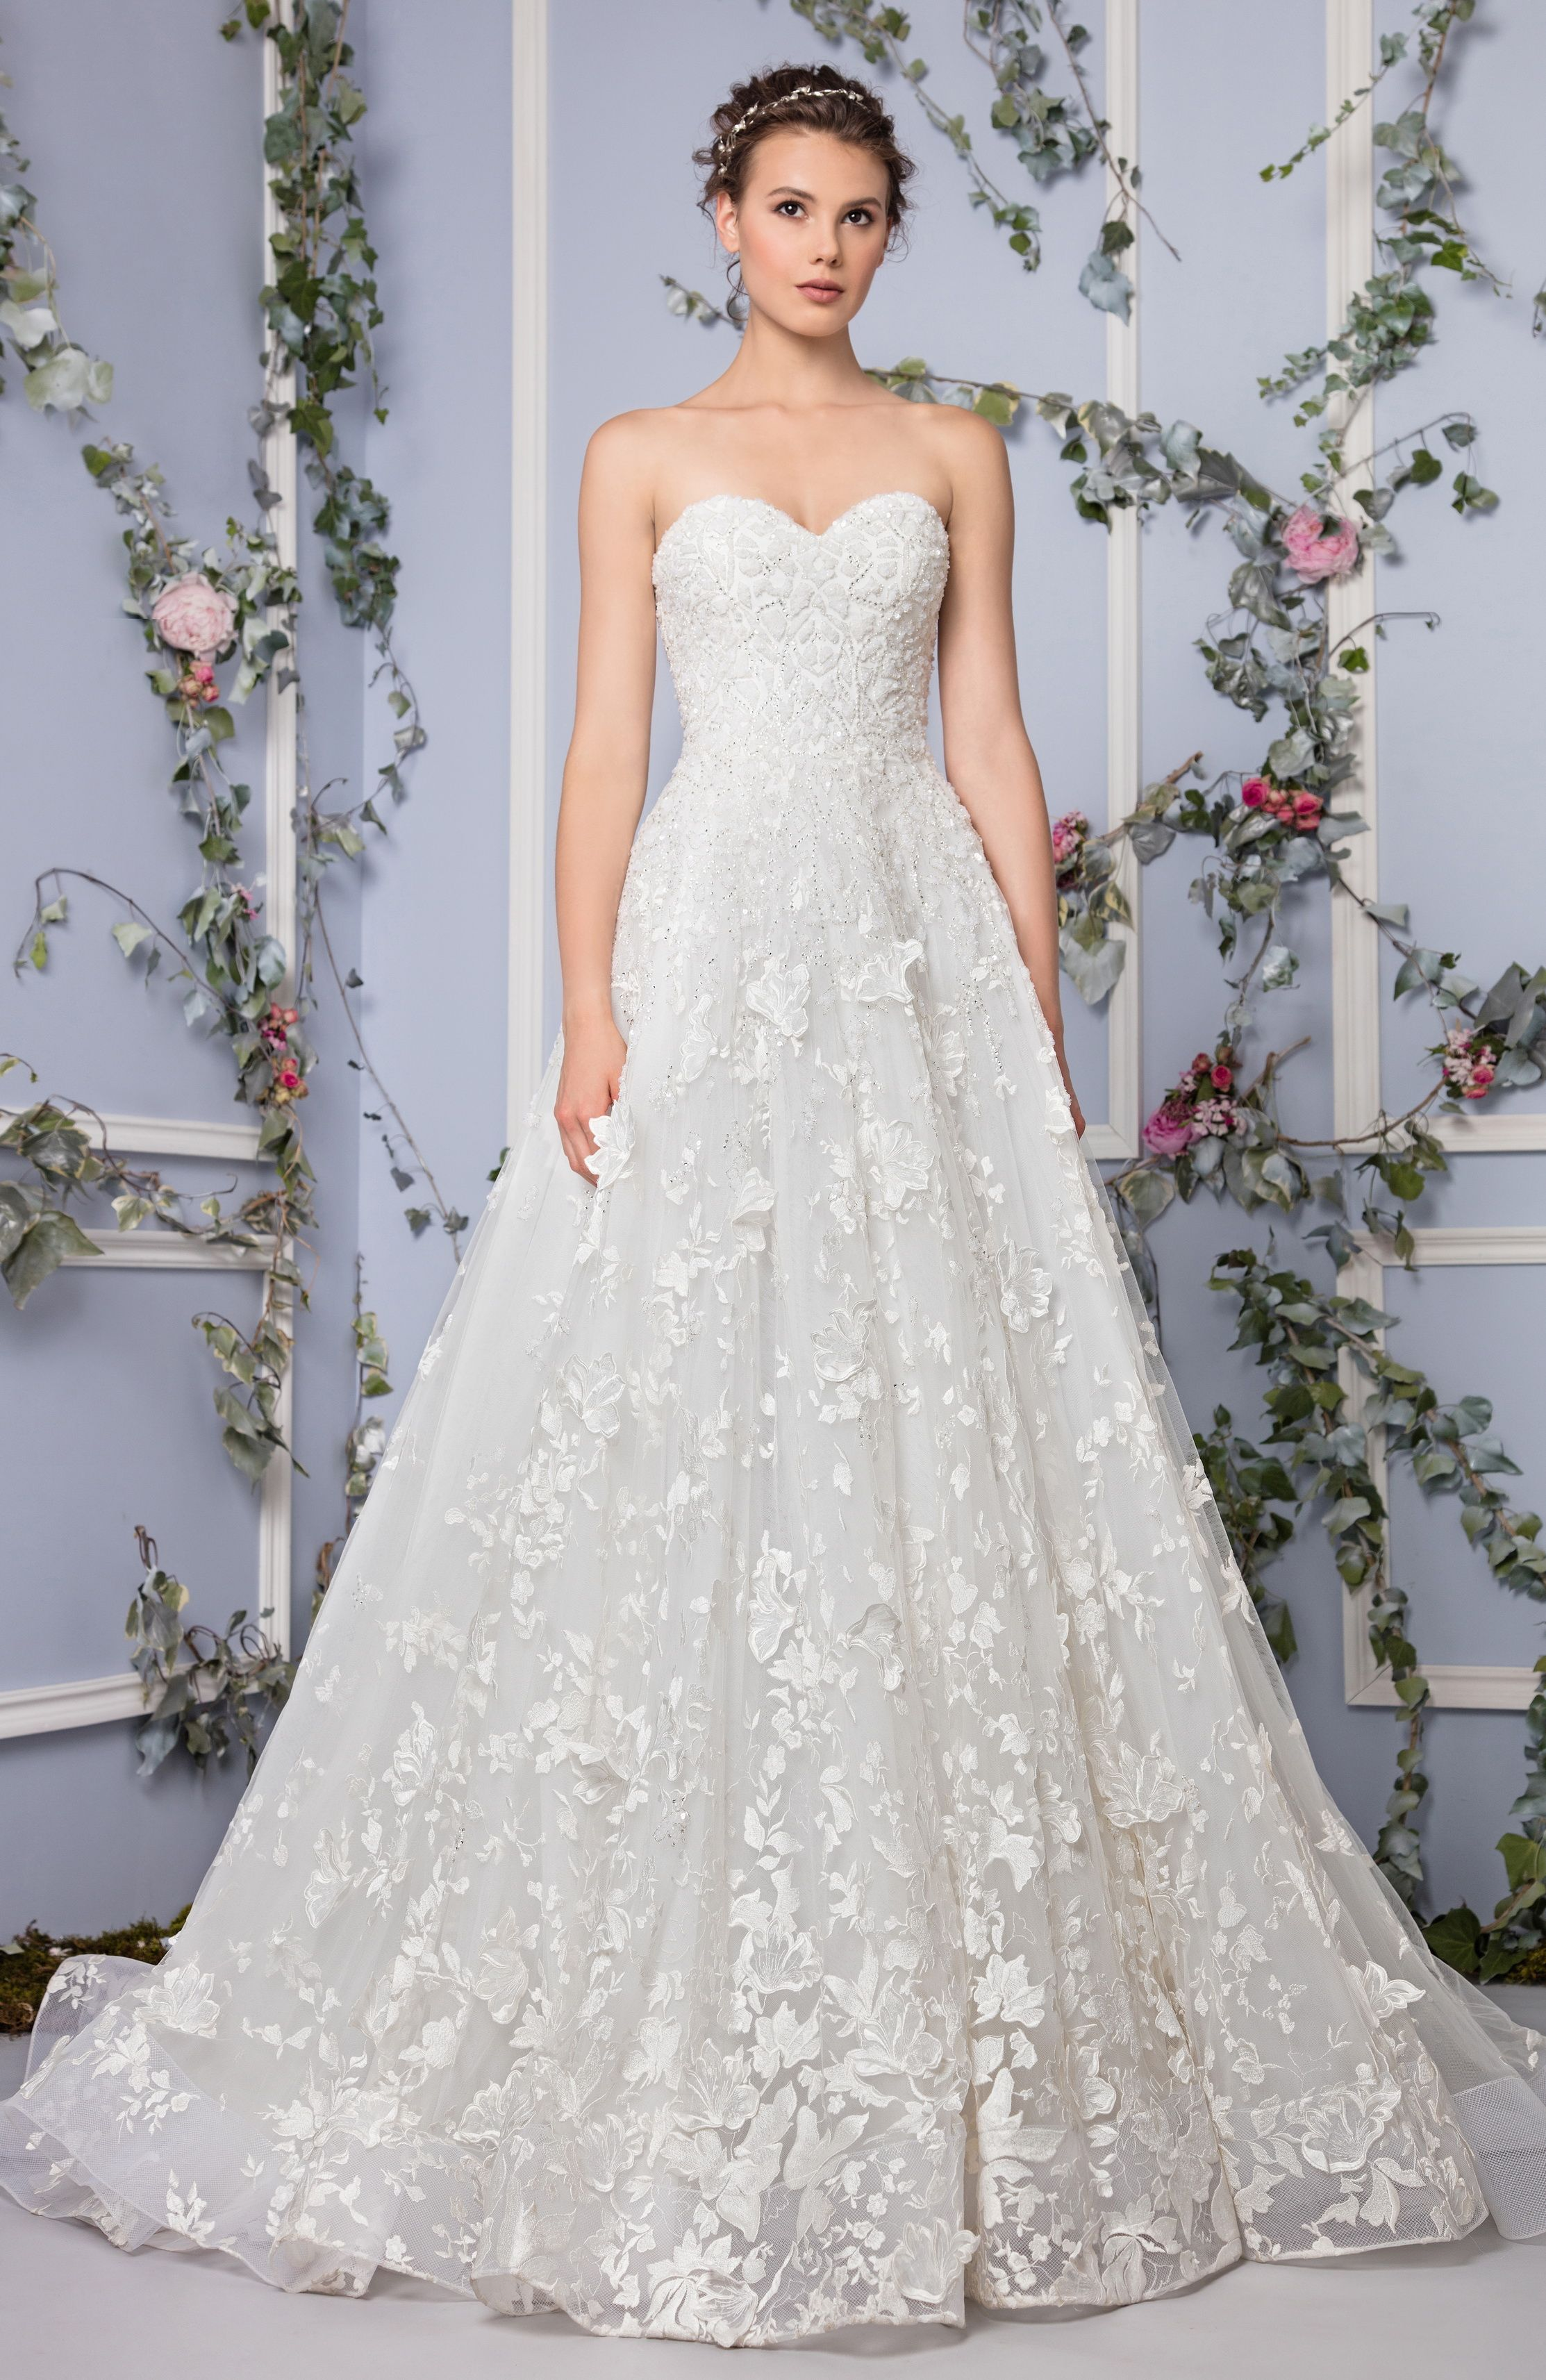 Tony Ward Bridal 2017 l Look 3 l Caireen - Off White A-line sweetheart evening dress in embroidered Tulle, embellished with crystals and Silk flowers on a full skirt.